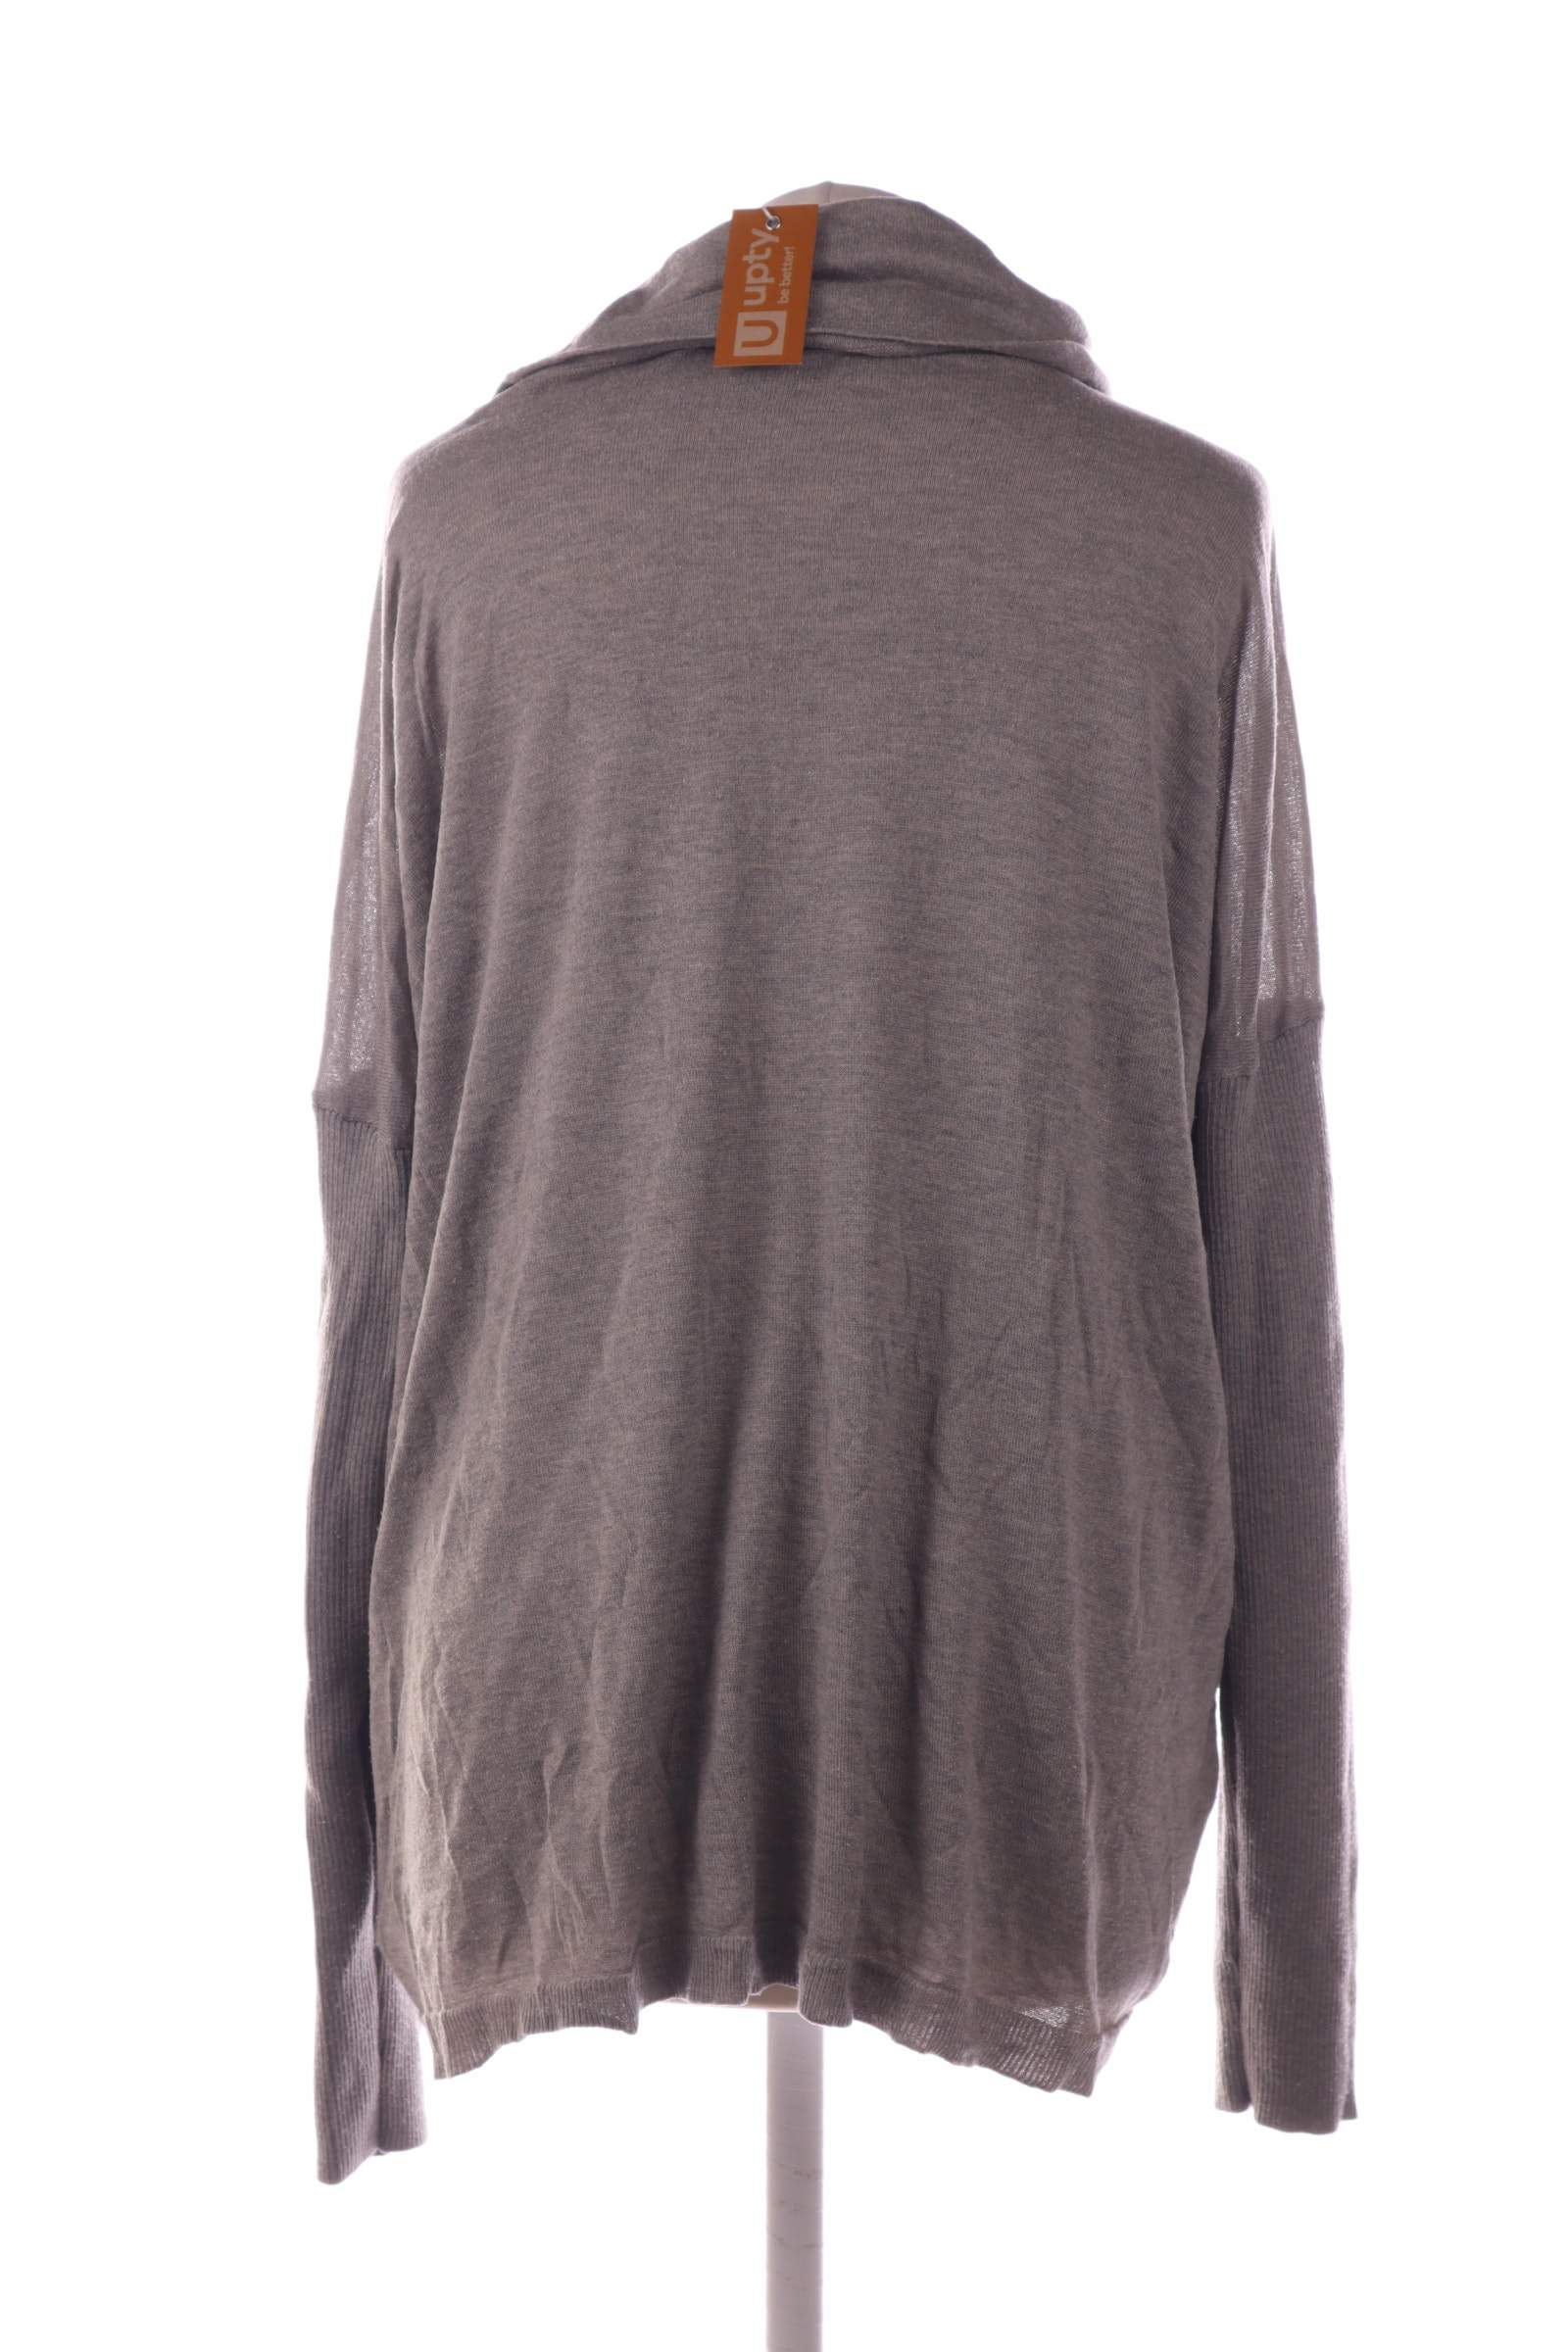 Ralph Lauren Gray Sweater - upty.store